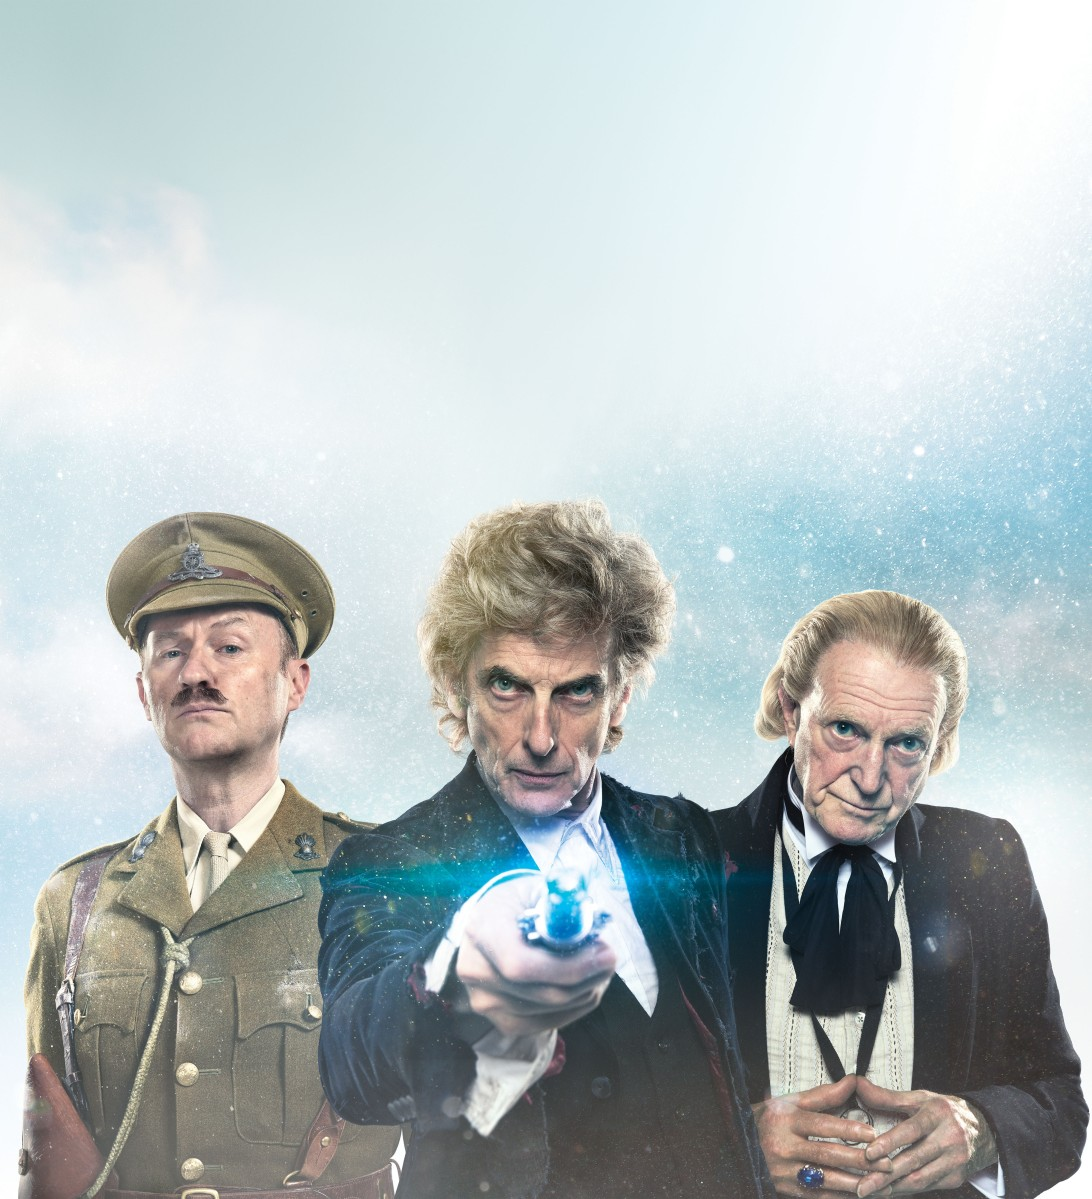 Watch: Doctor Who - Twice Upon a Time trailer